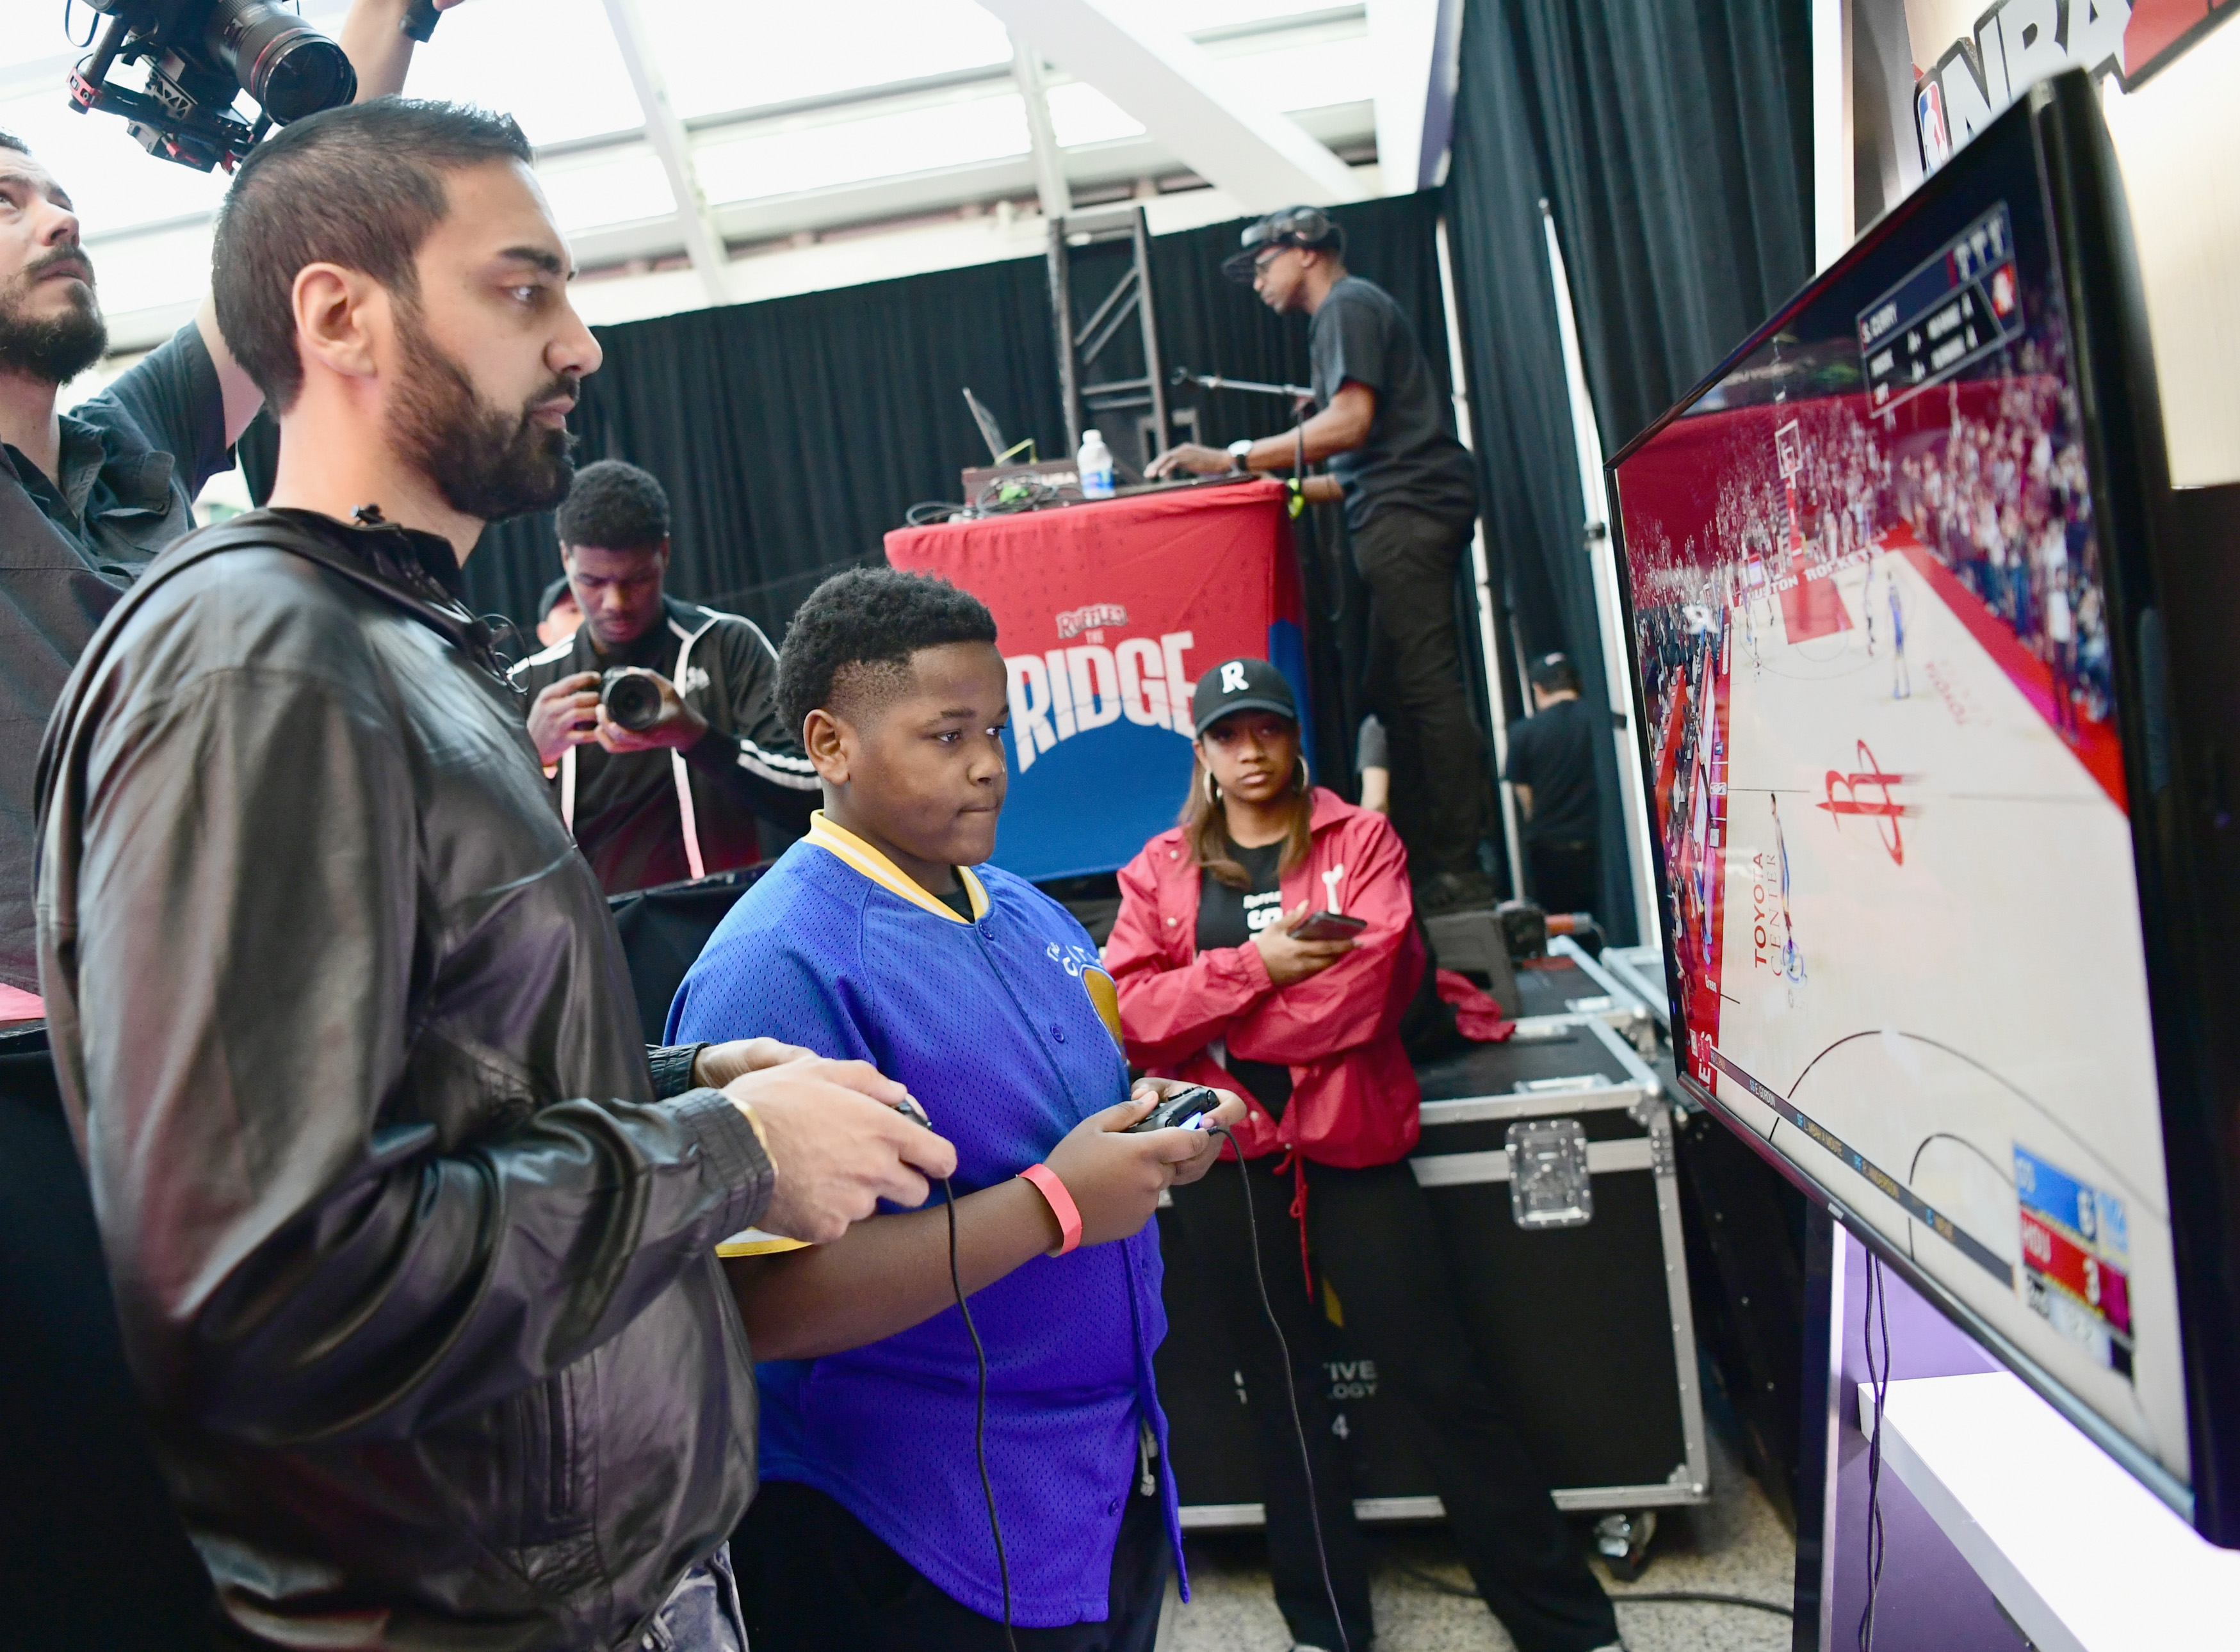 """Ruffles, the Official Chip of the NBA, and Presenting Partner of the NBA Celebrity All-Star Game unveils """"THE RIDGE"""" 4-Point During NBA All-Star Weekend"""